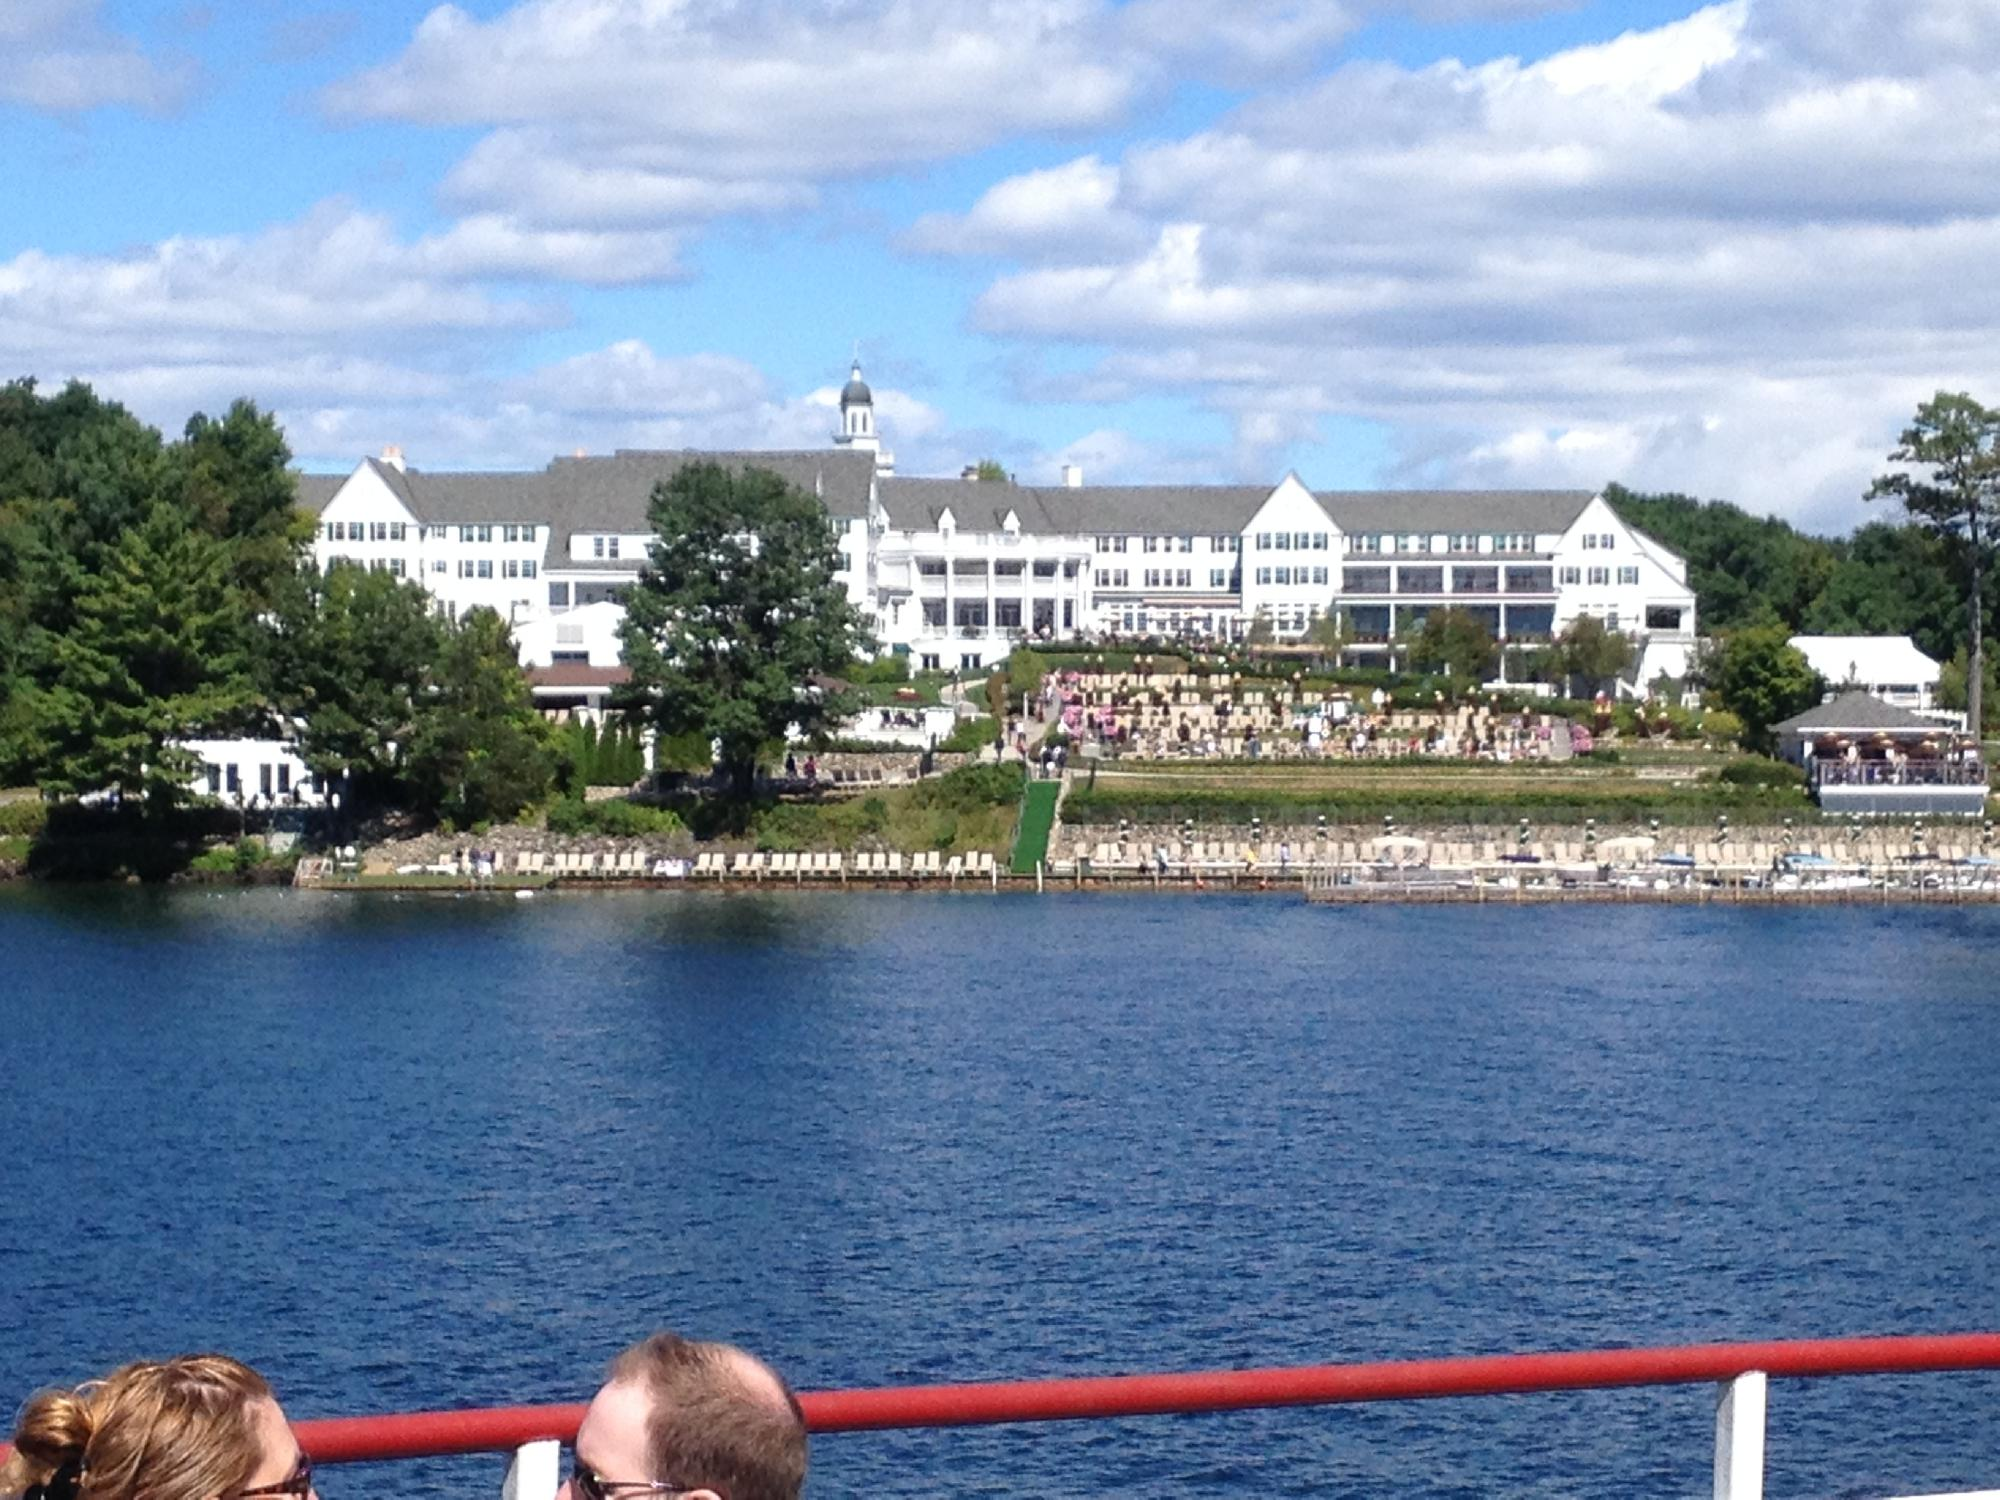 Sagamore Hotel in the middle of the lake